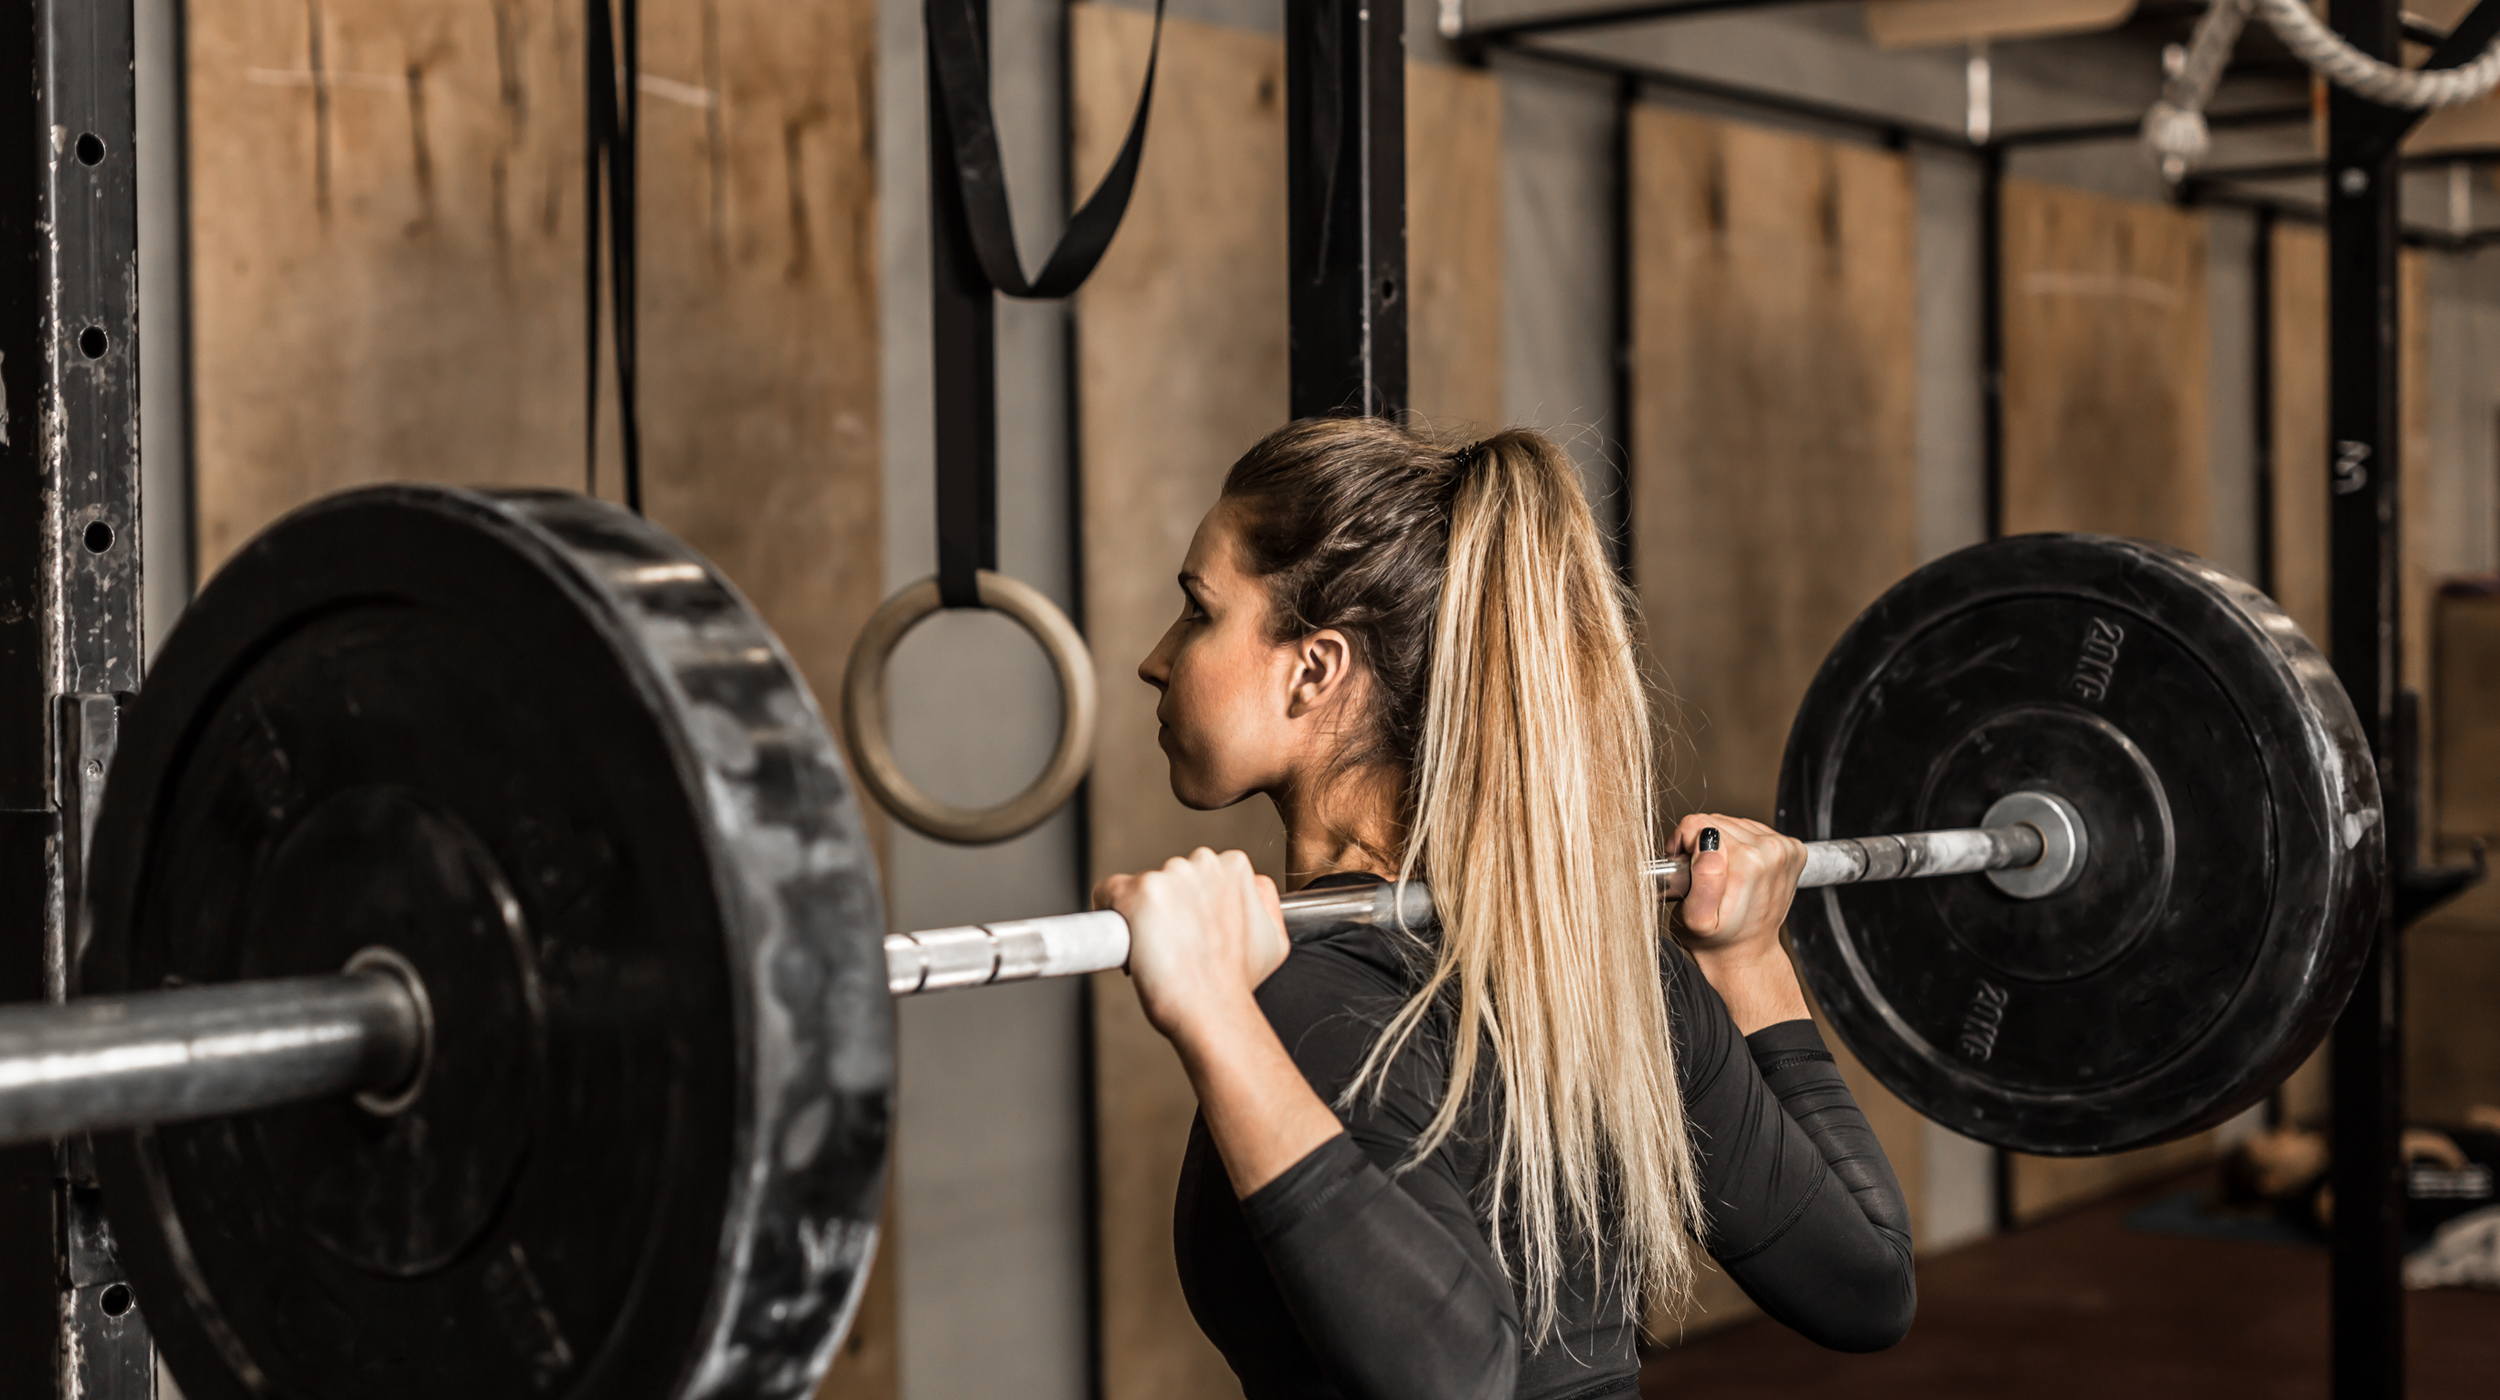 Best Exercises to Gain Functional Strength